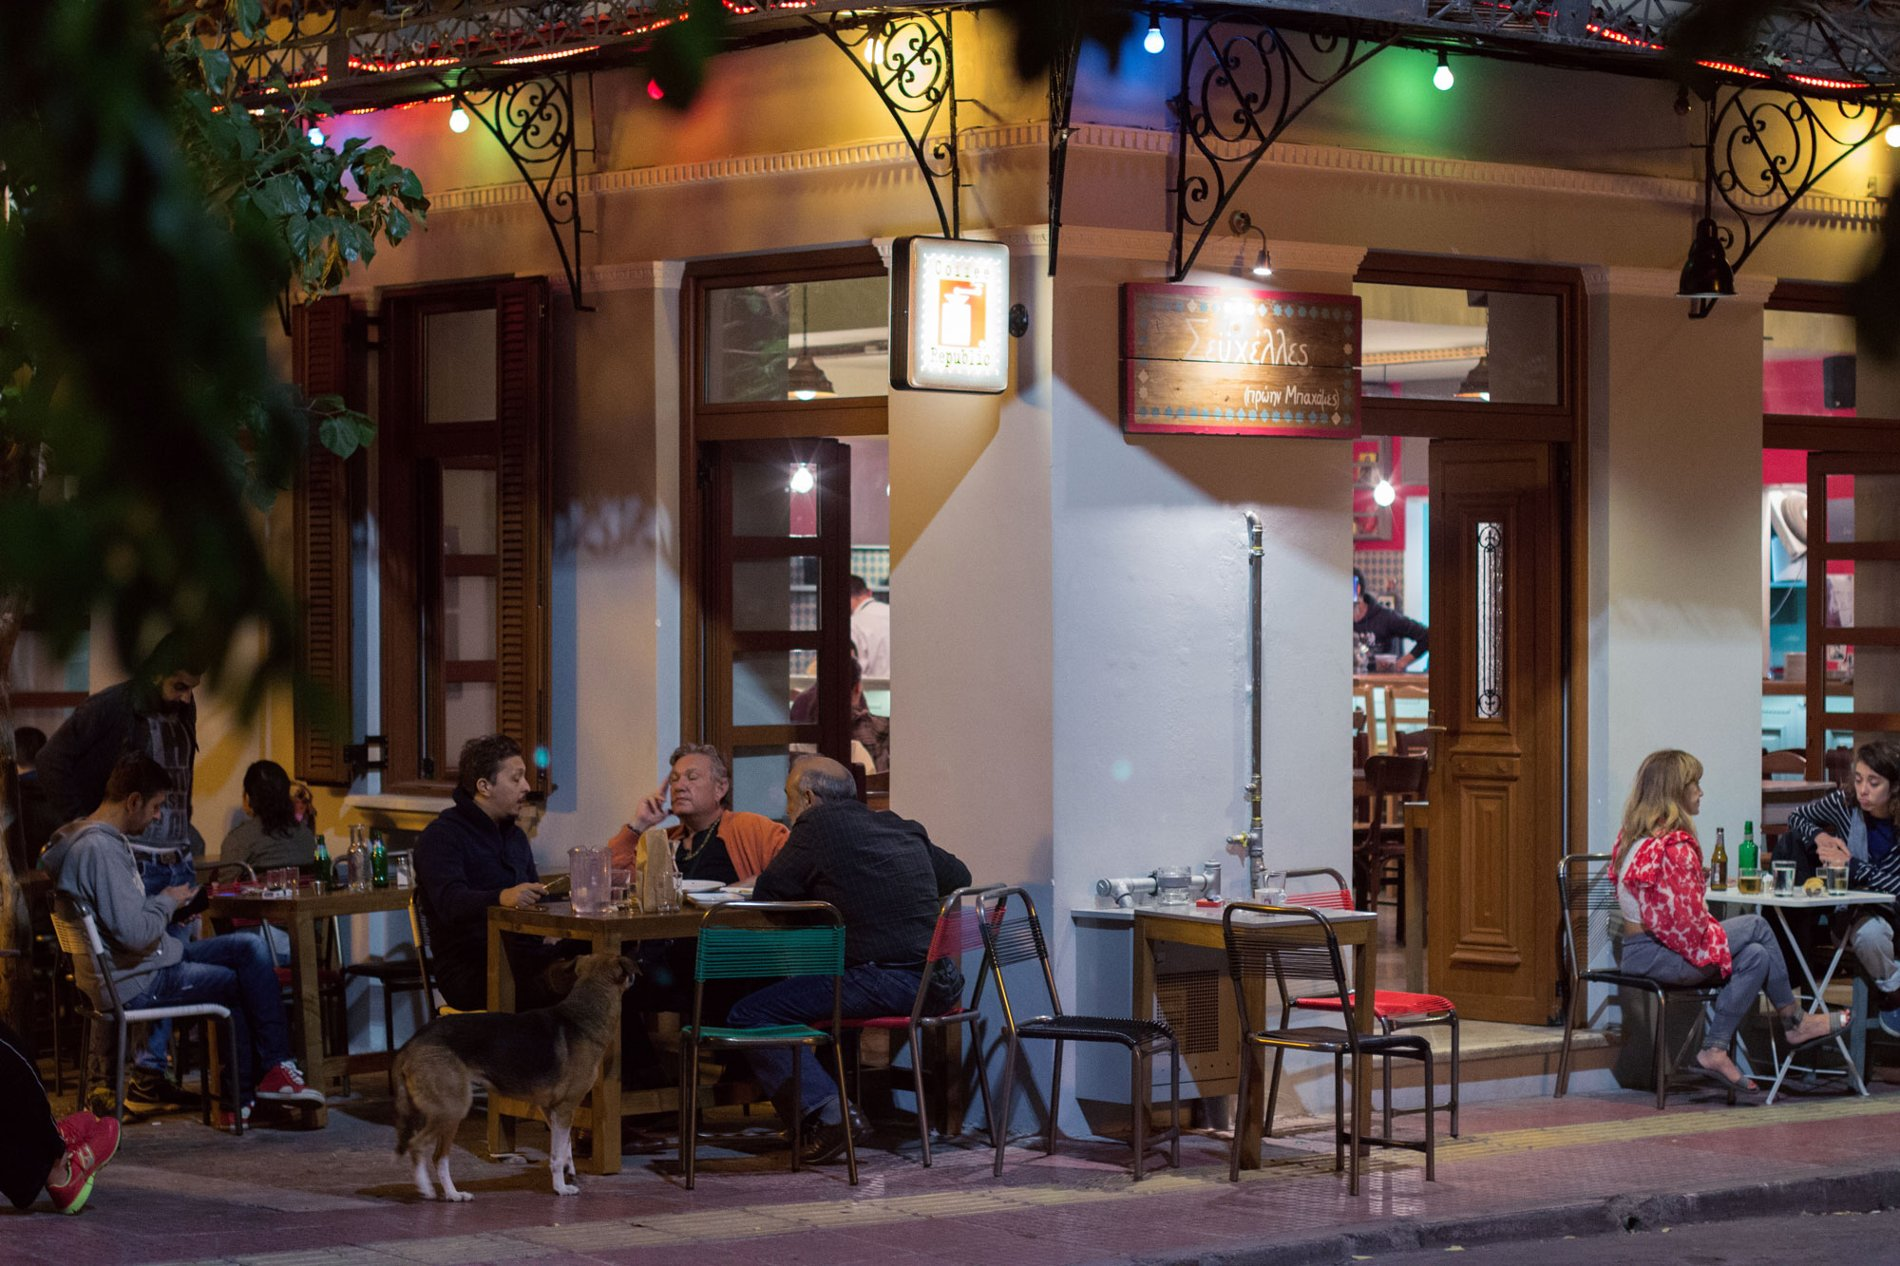 Metaxourgeio or Kerameikos is one of the most vibrant neighborhoods of Athens at night and is ideal for food and drinks at the various bar/restaurants of the area. Source: Alexandros Akrivos, Lifo